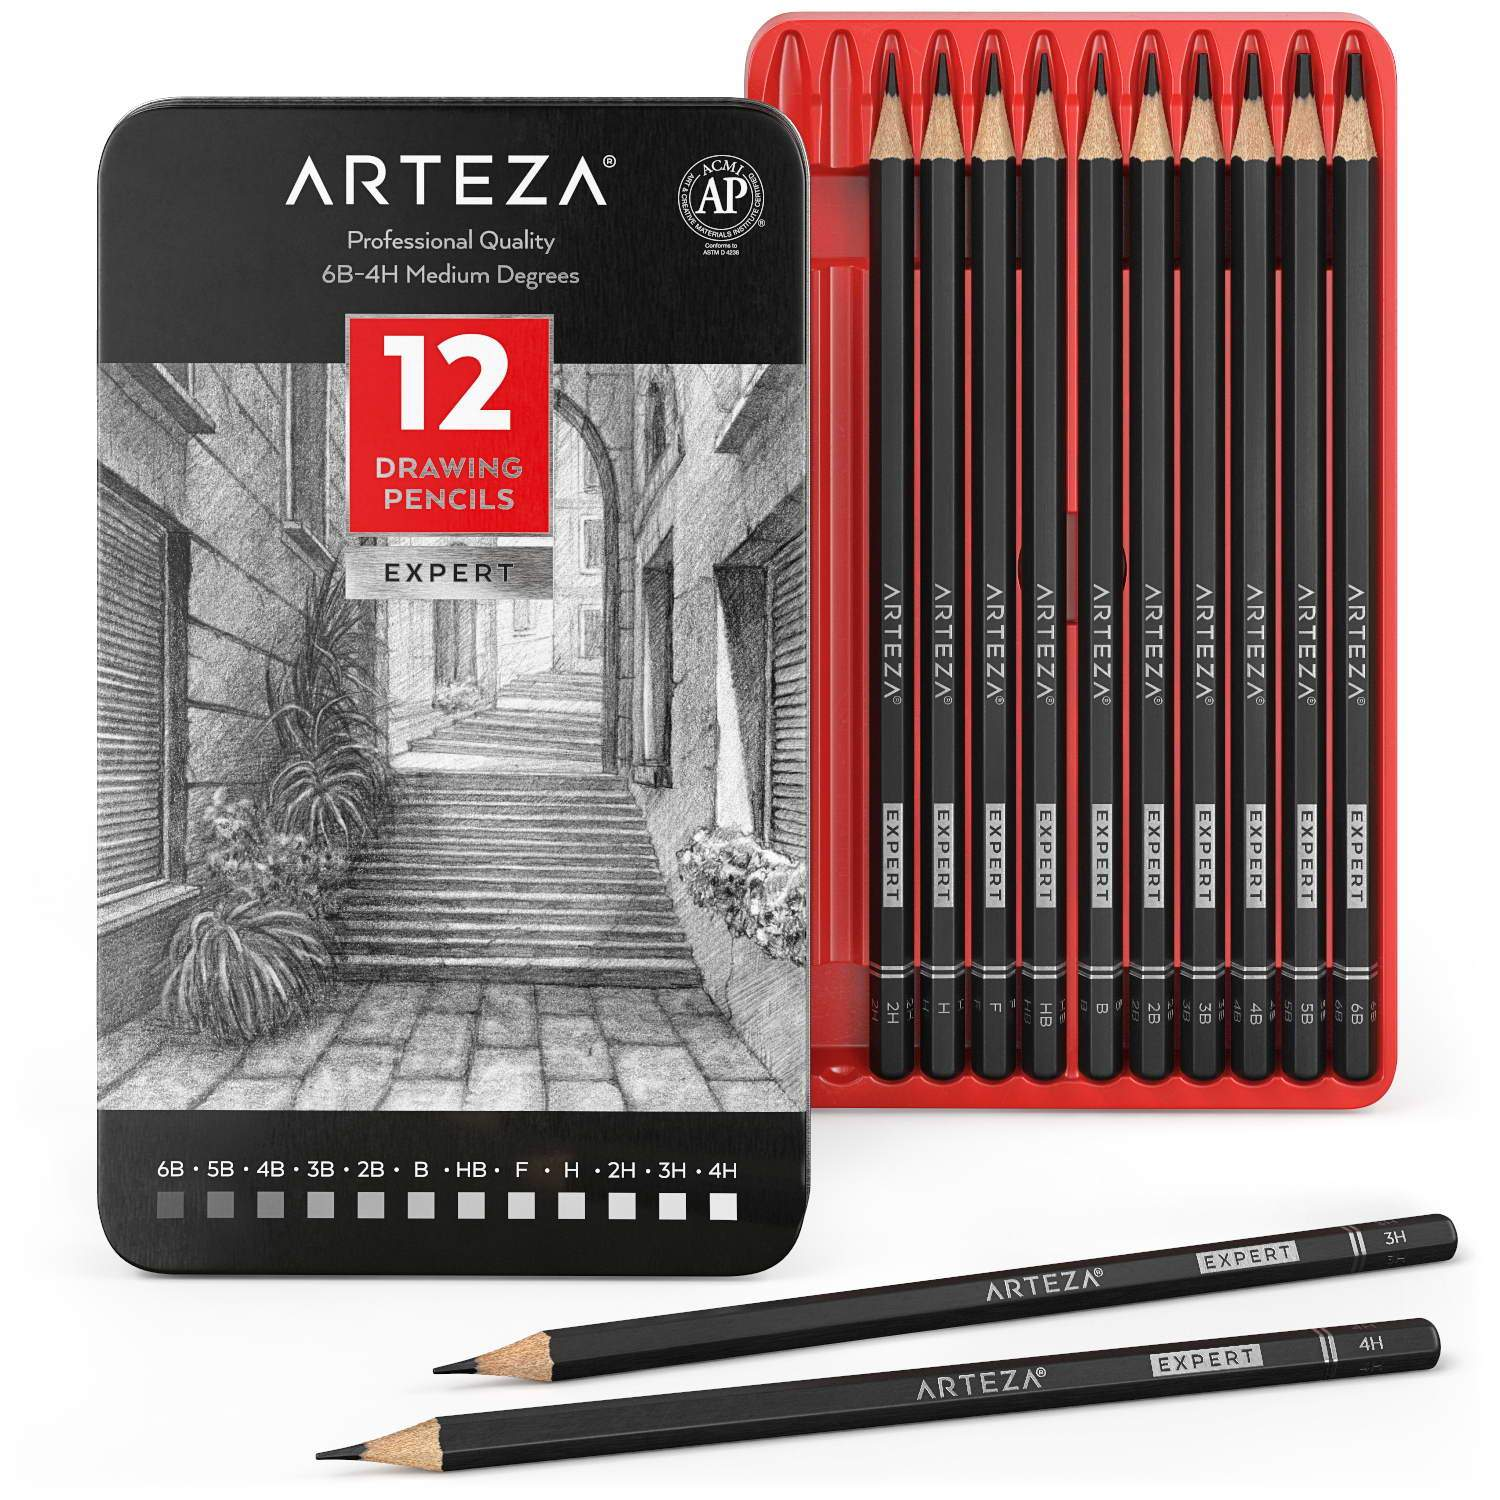 12 Charcoal Art Pencils Drawing Painting Sketching Long Lasting Great Quality